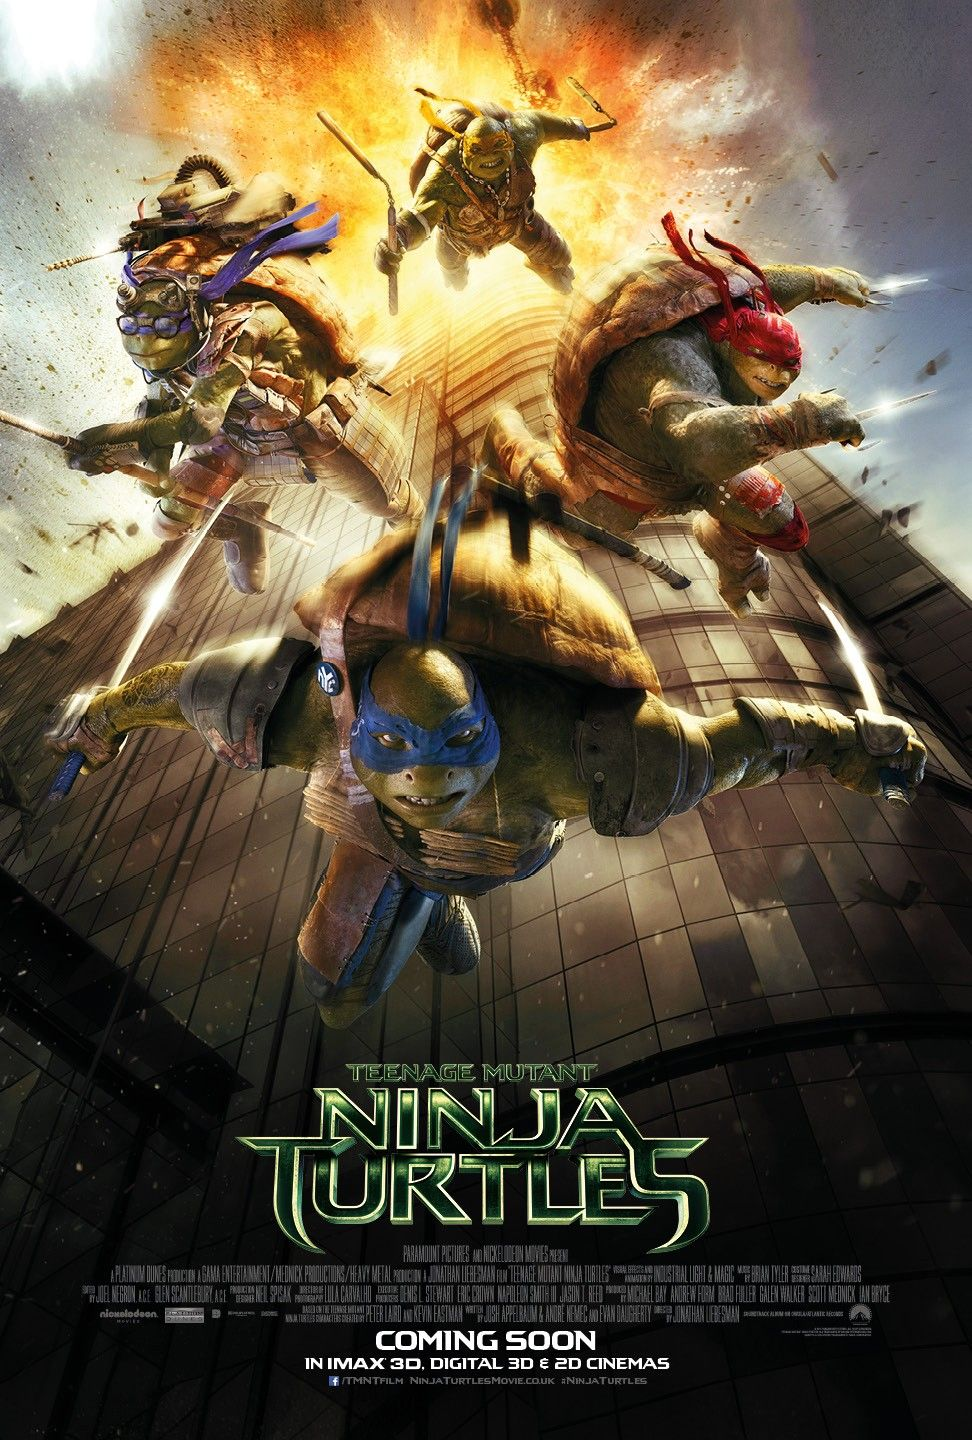 Return To The Main Poster Page For Teenage Mutant Ninja Turtles Teenage Mutant Ninja Turtles Movie Ninja Turtles Movie Ninja Turtles 2014